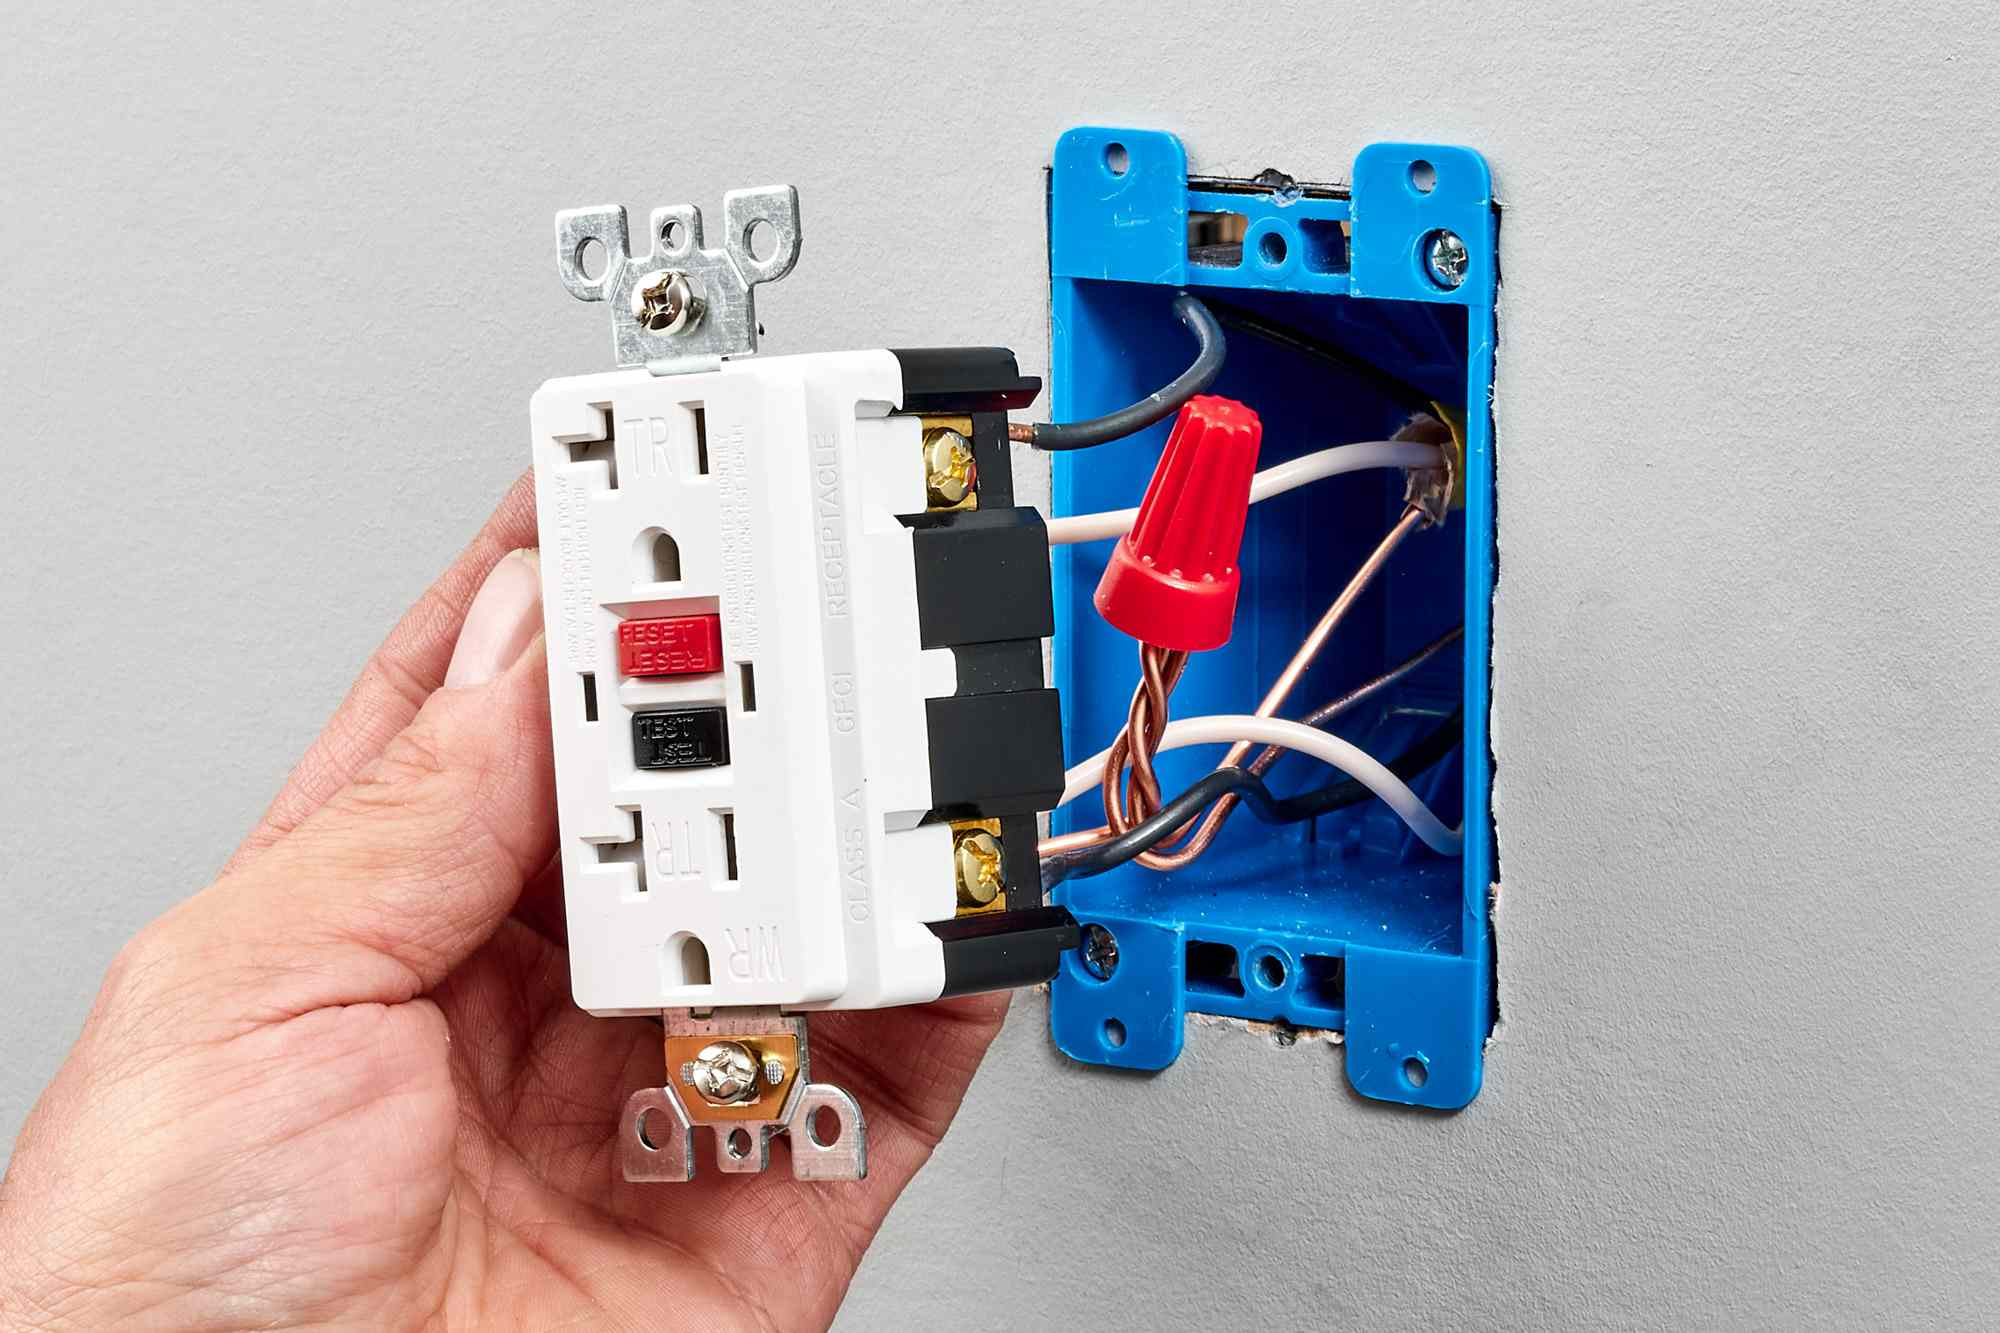 GFCI receptacle wired to front of electrical device